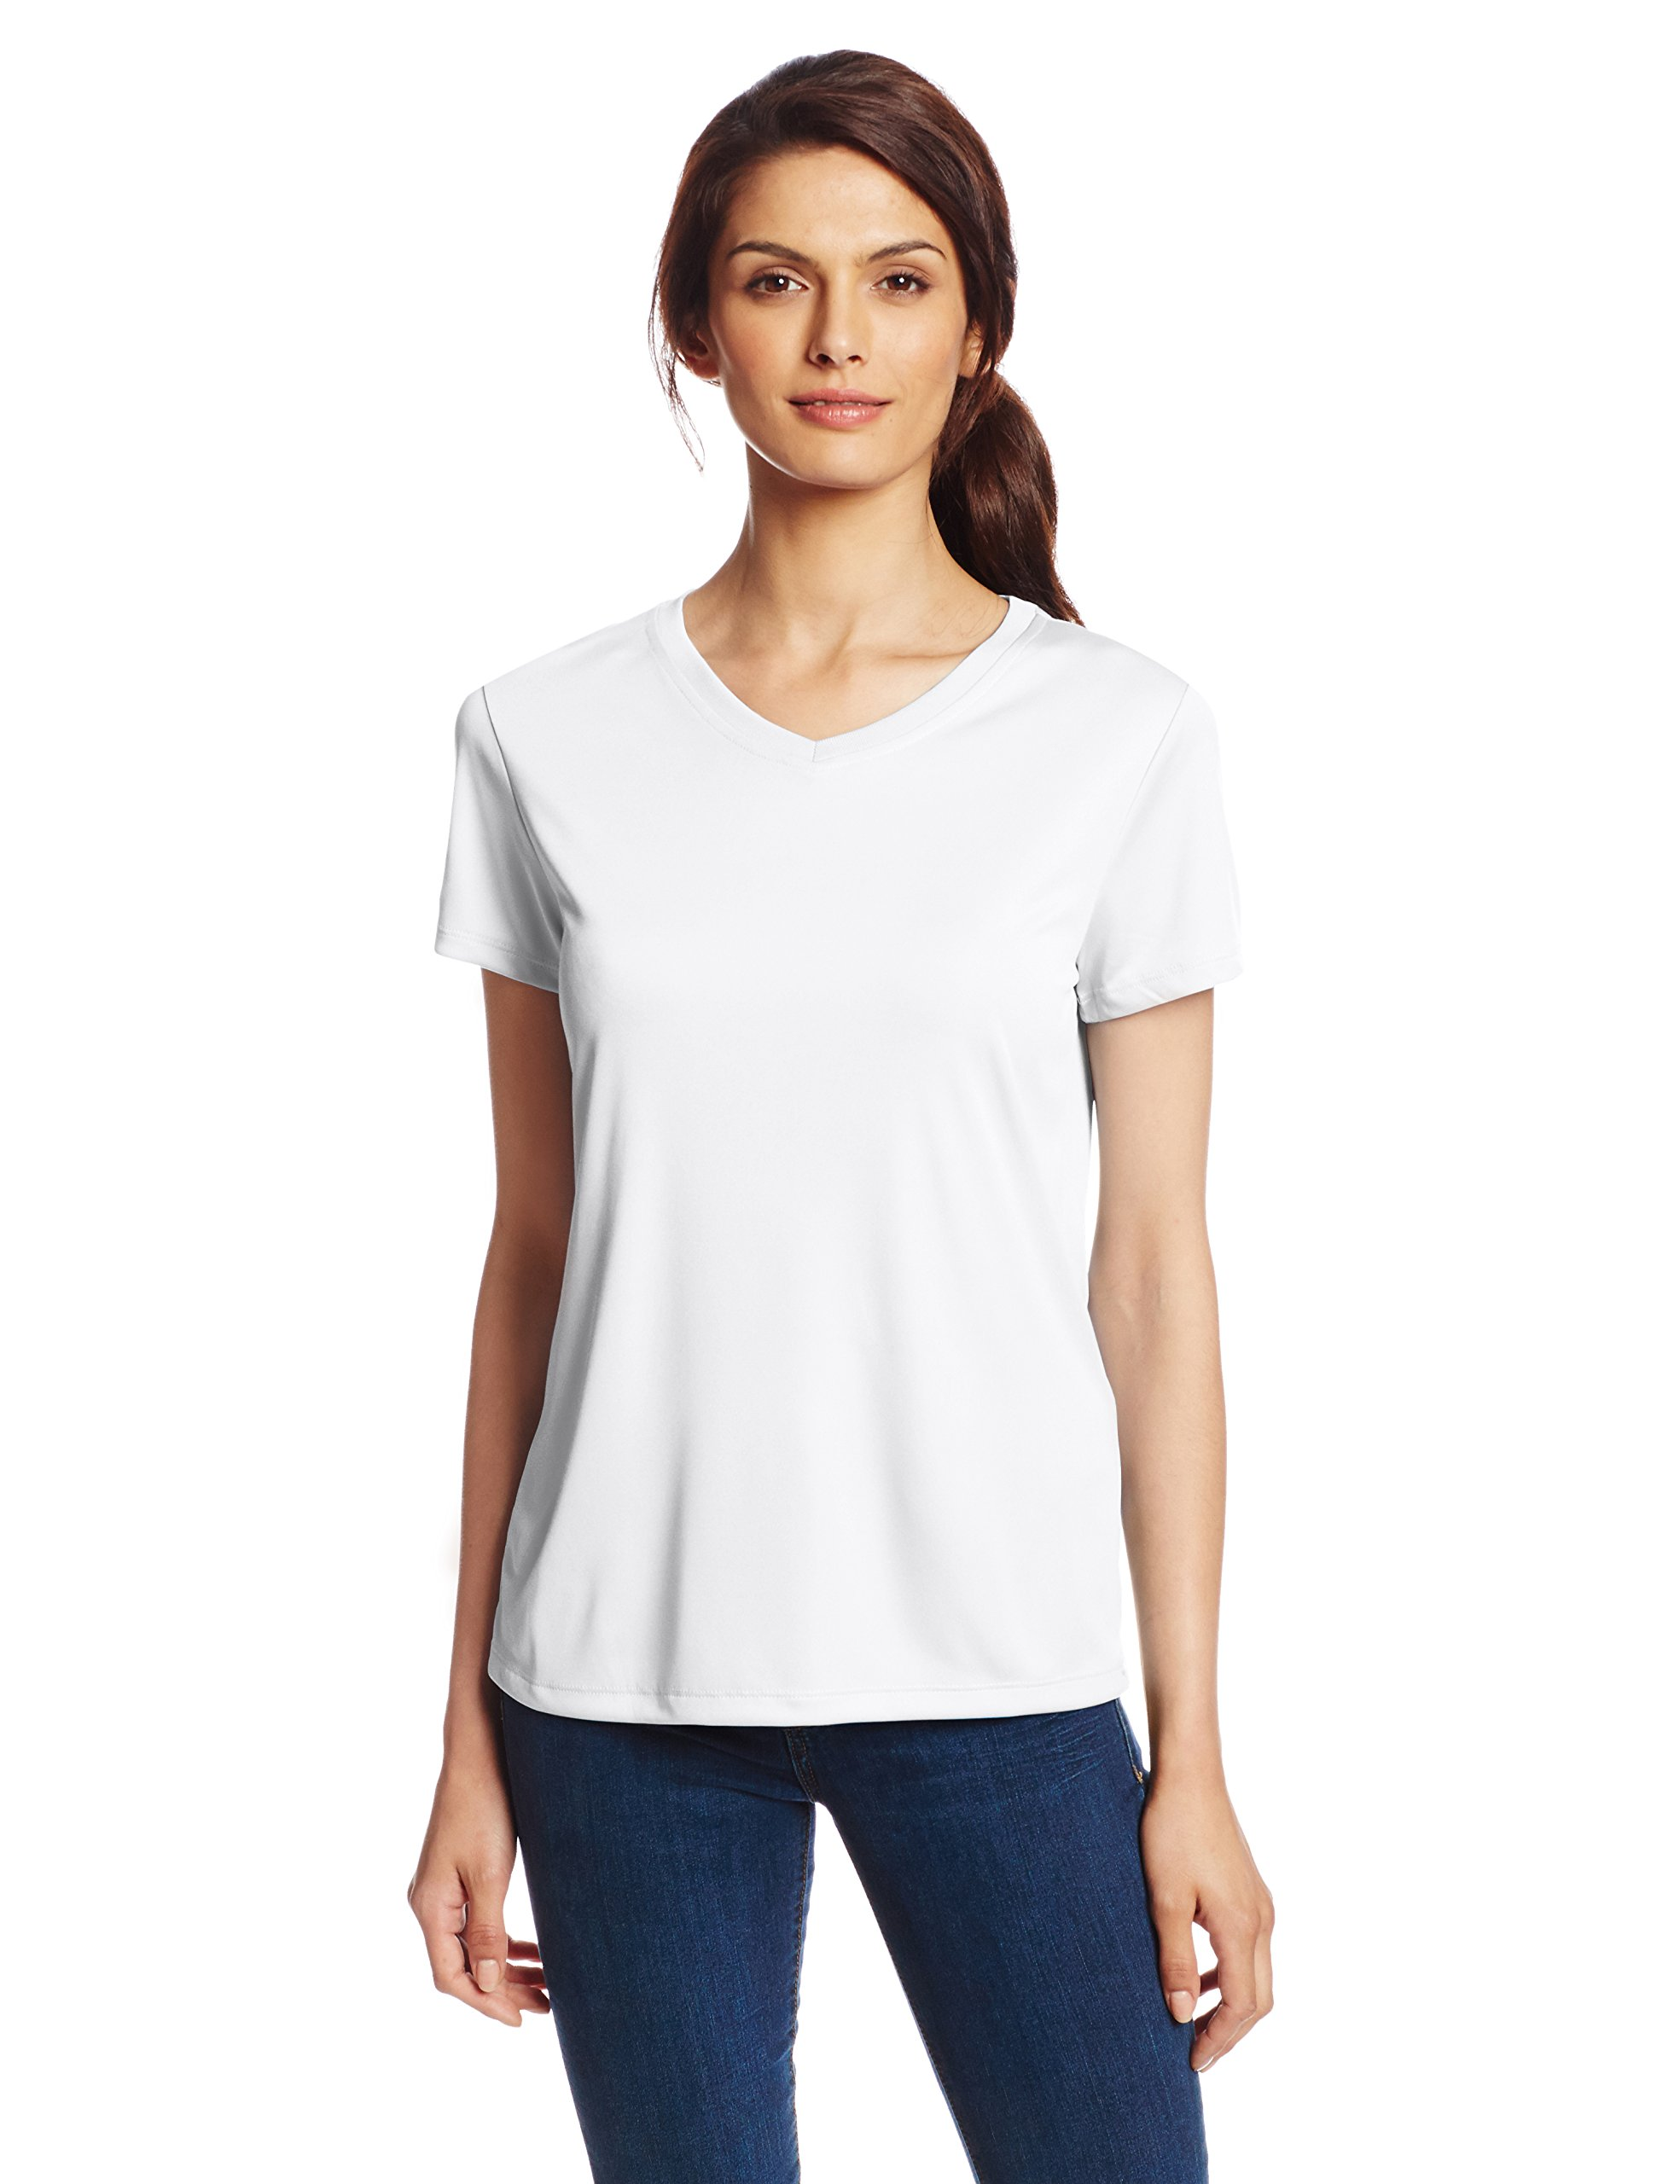 Hanes Sport Women's Cool DRI Performance V-Neck Tee,White,3X-Large